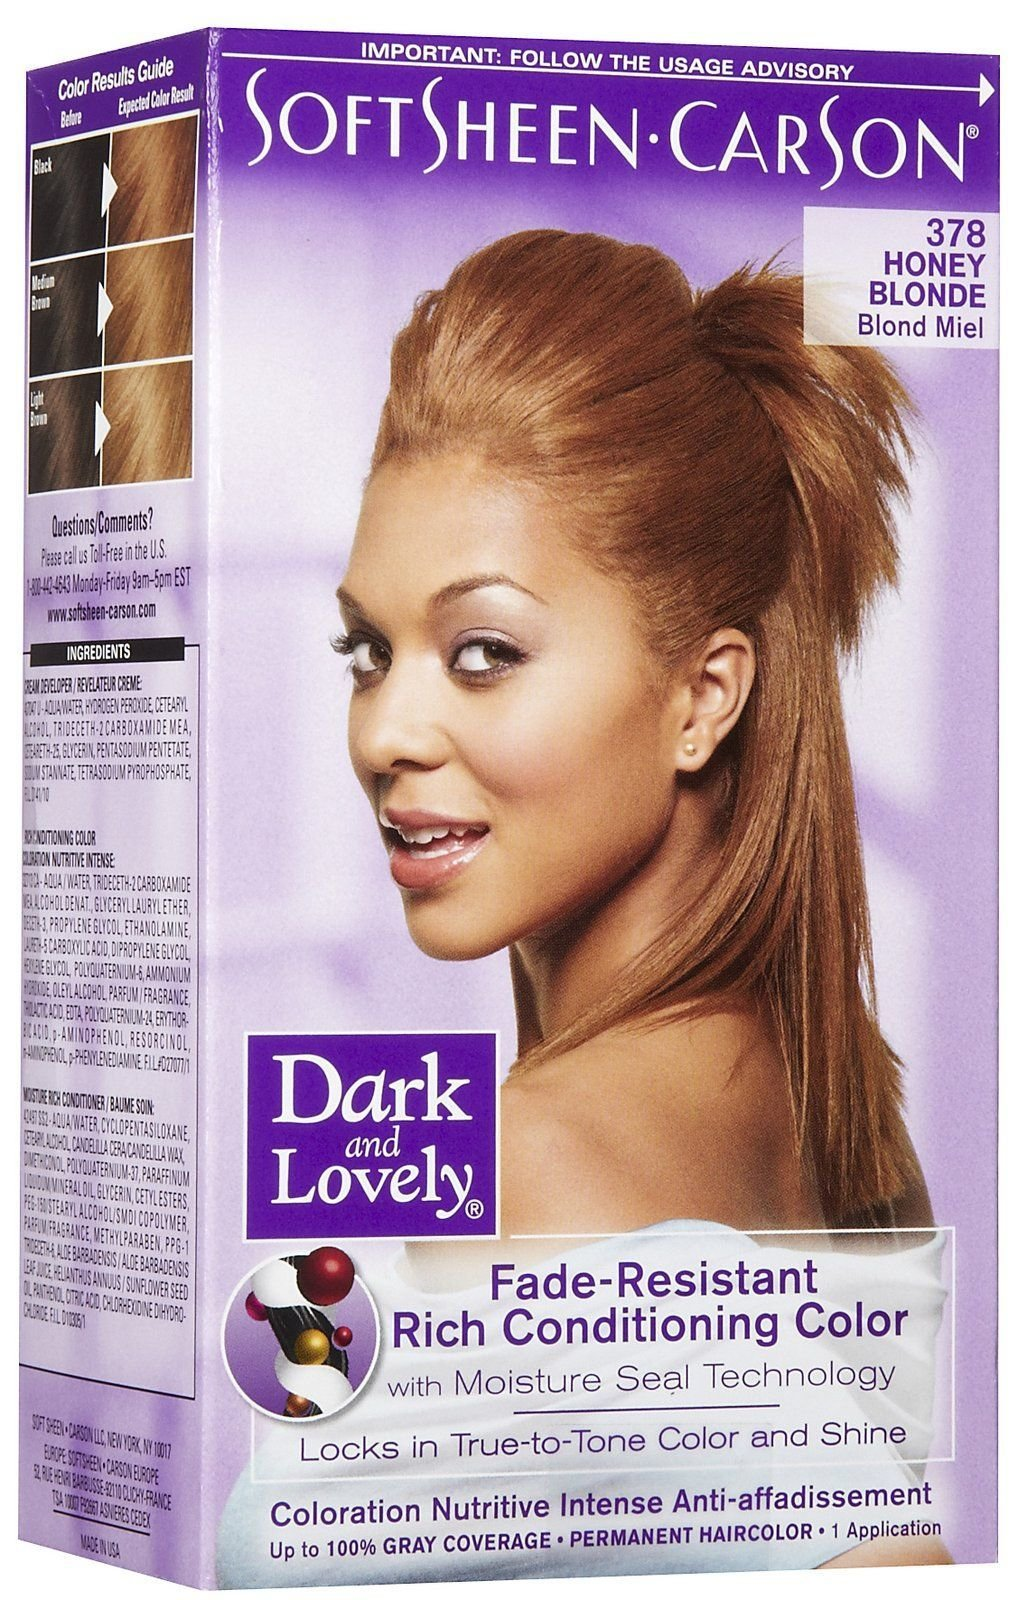 The Best Dark And Lovely Honey Blonde 378 100 Gray Coverage Pictures